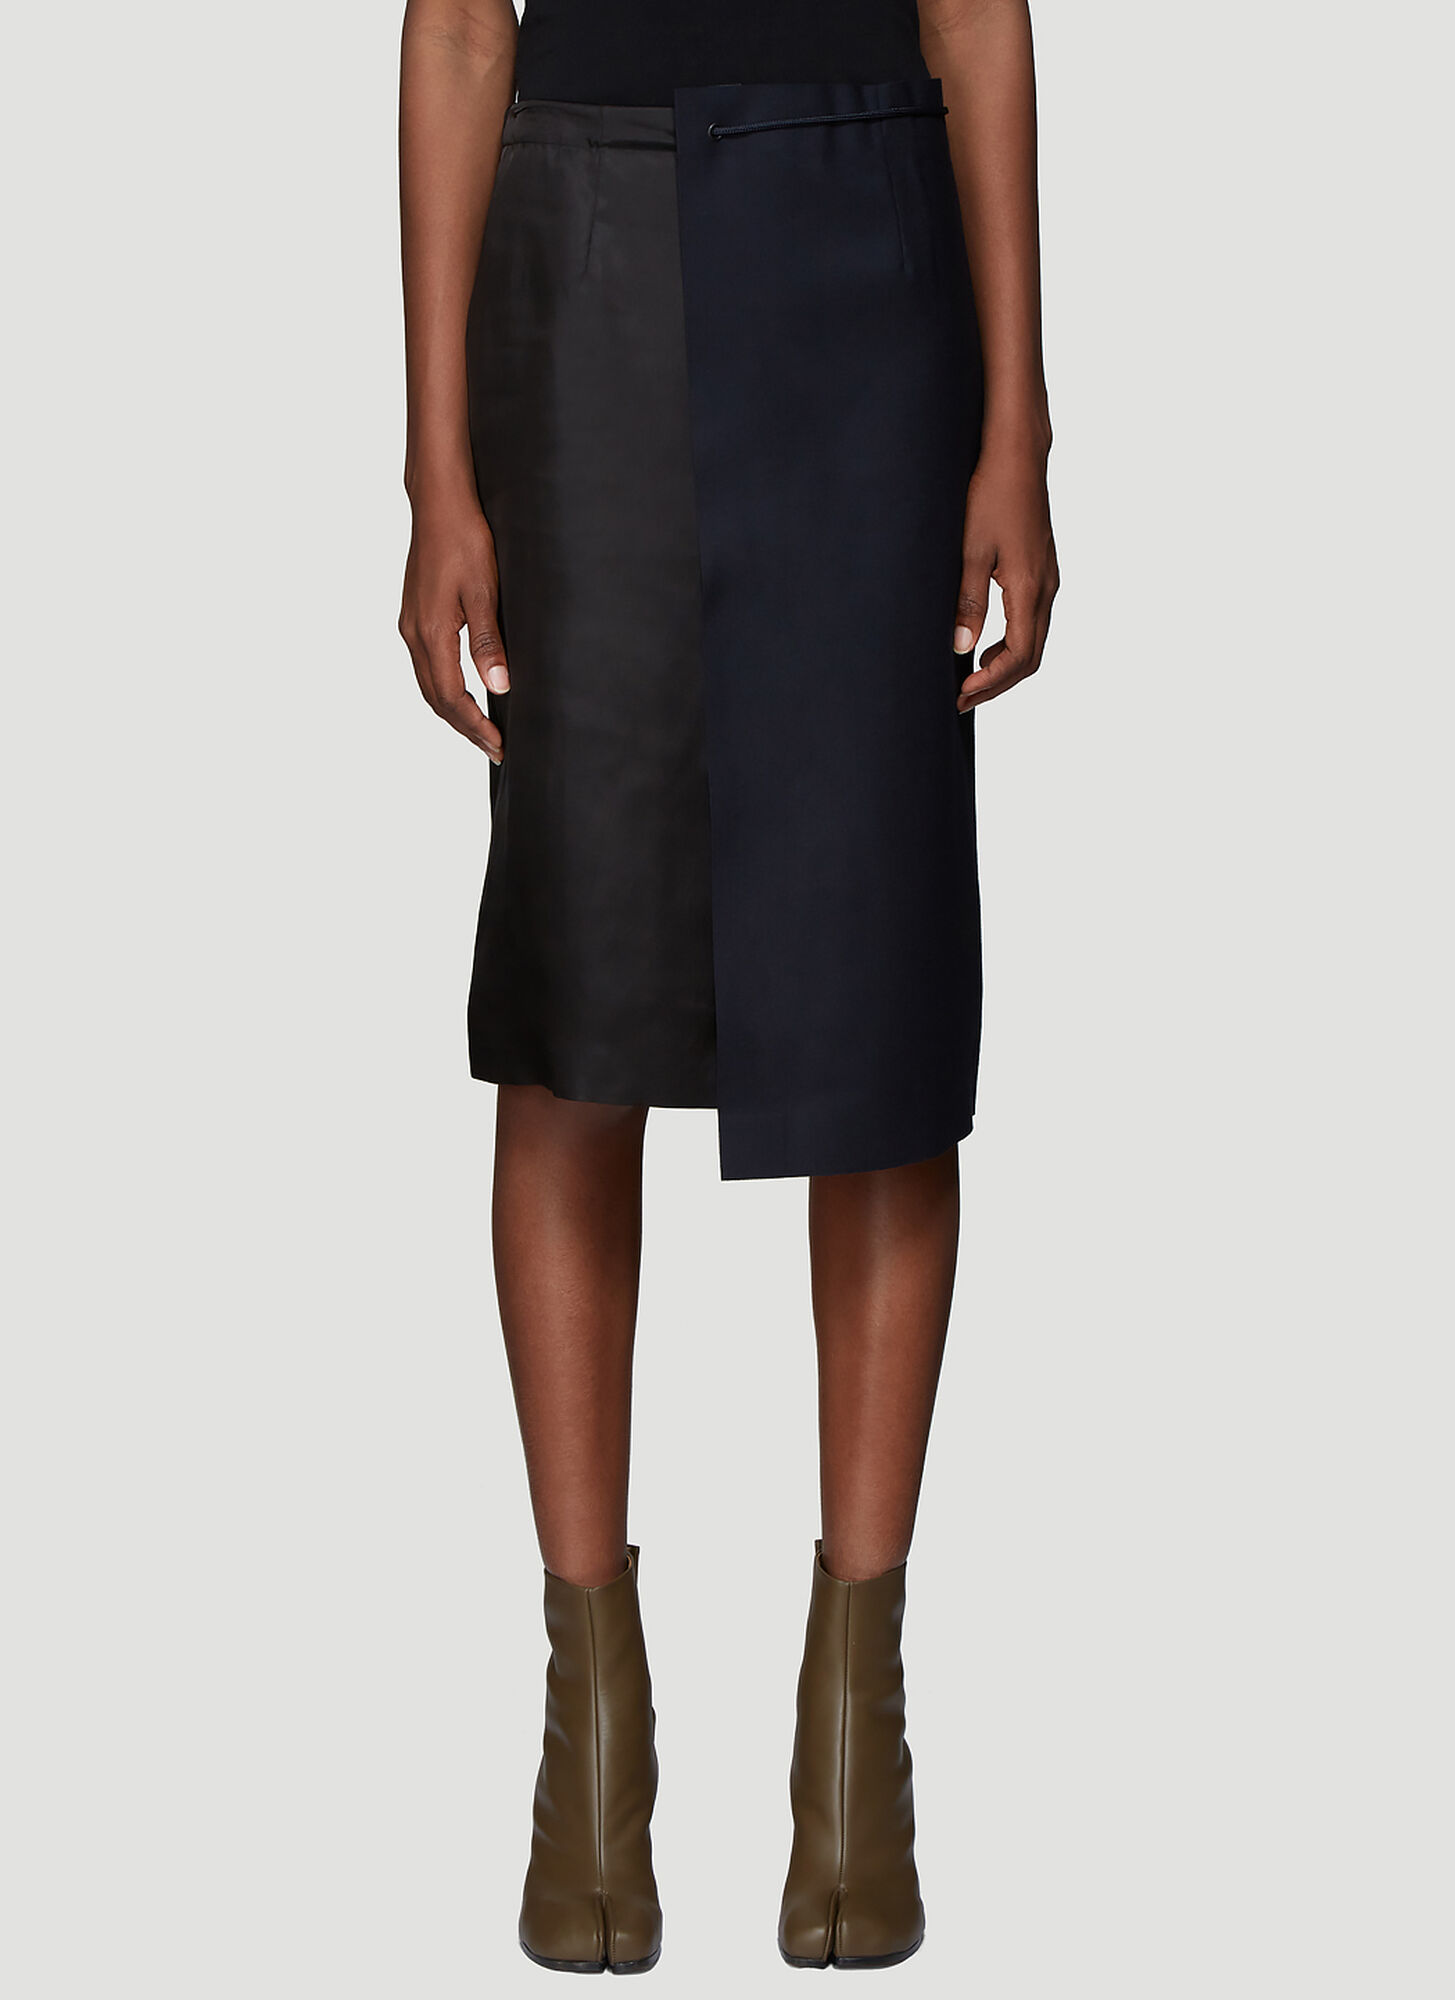 Maison Margiela Contrast Panel Drawstring Skirt in Navy